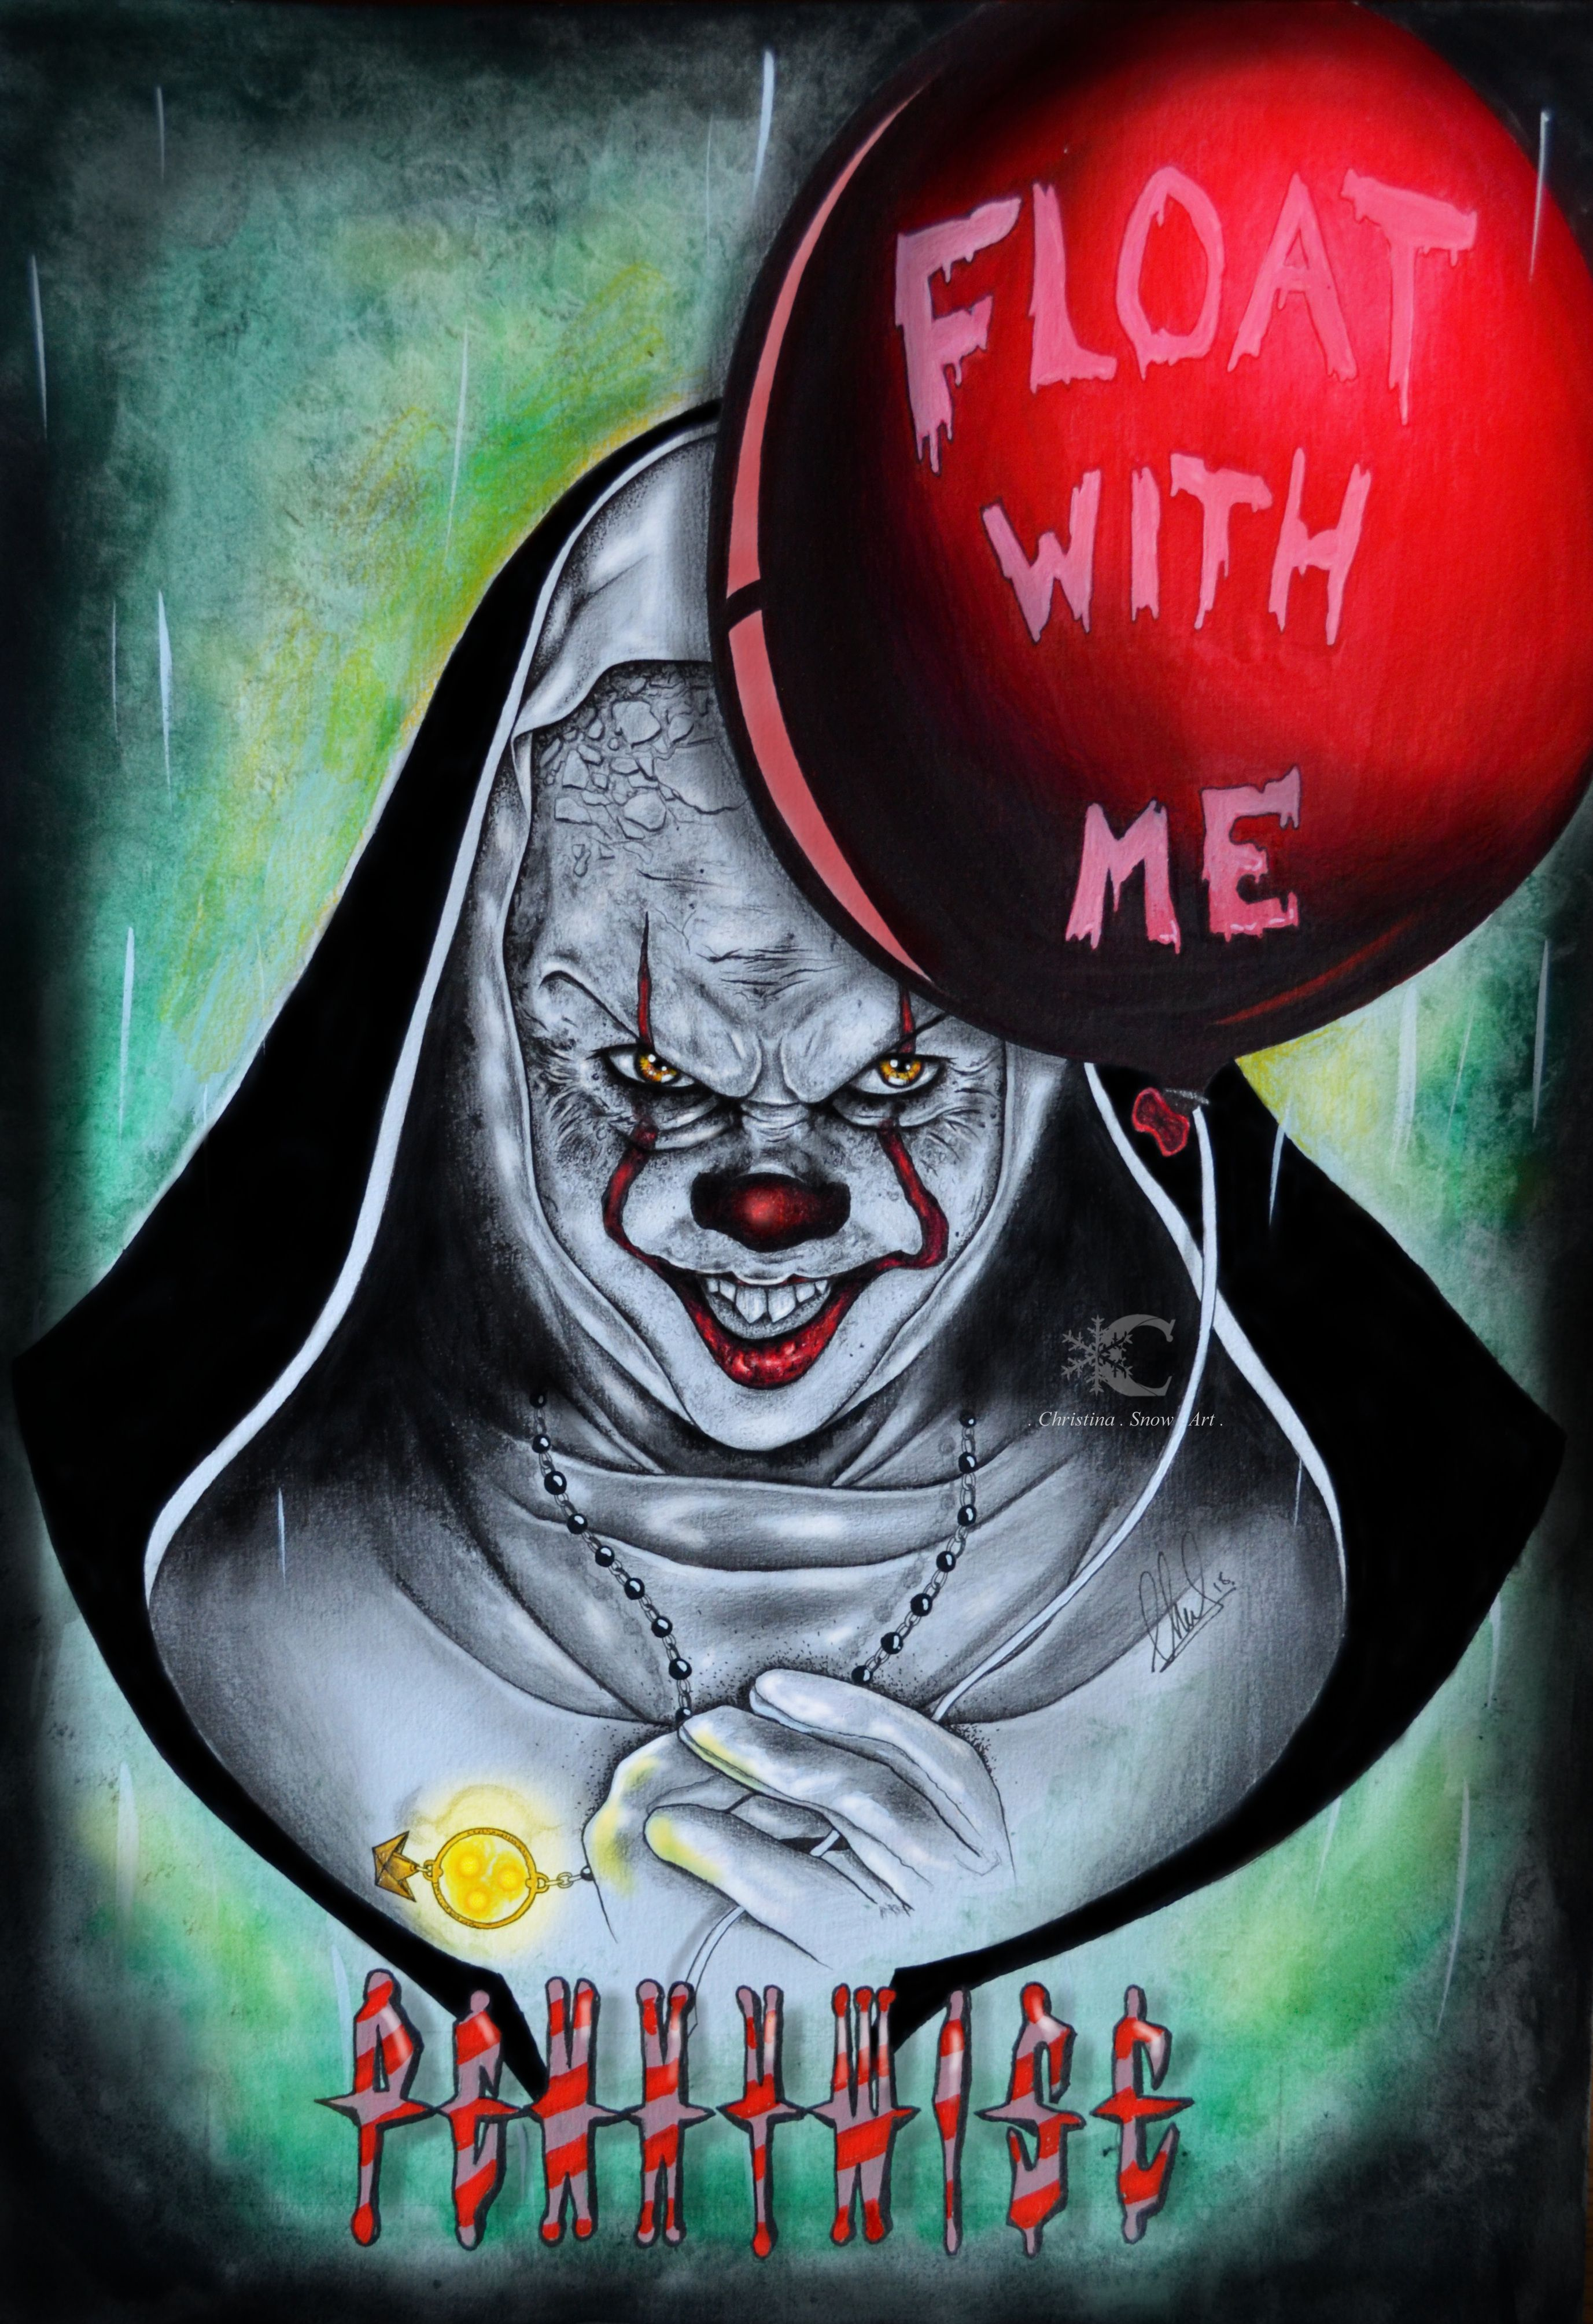 My Artwork on Pennywise - The Nun movie  Concept art  | St + it fam